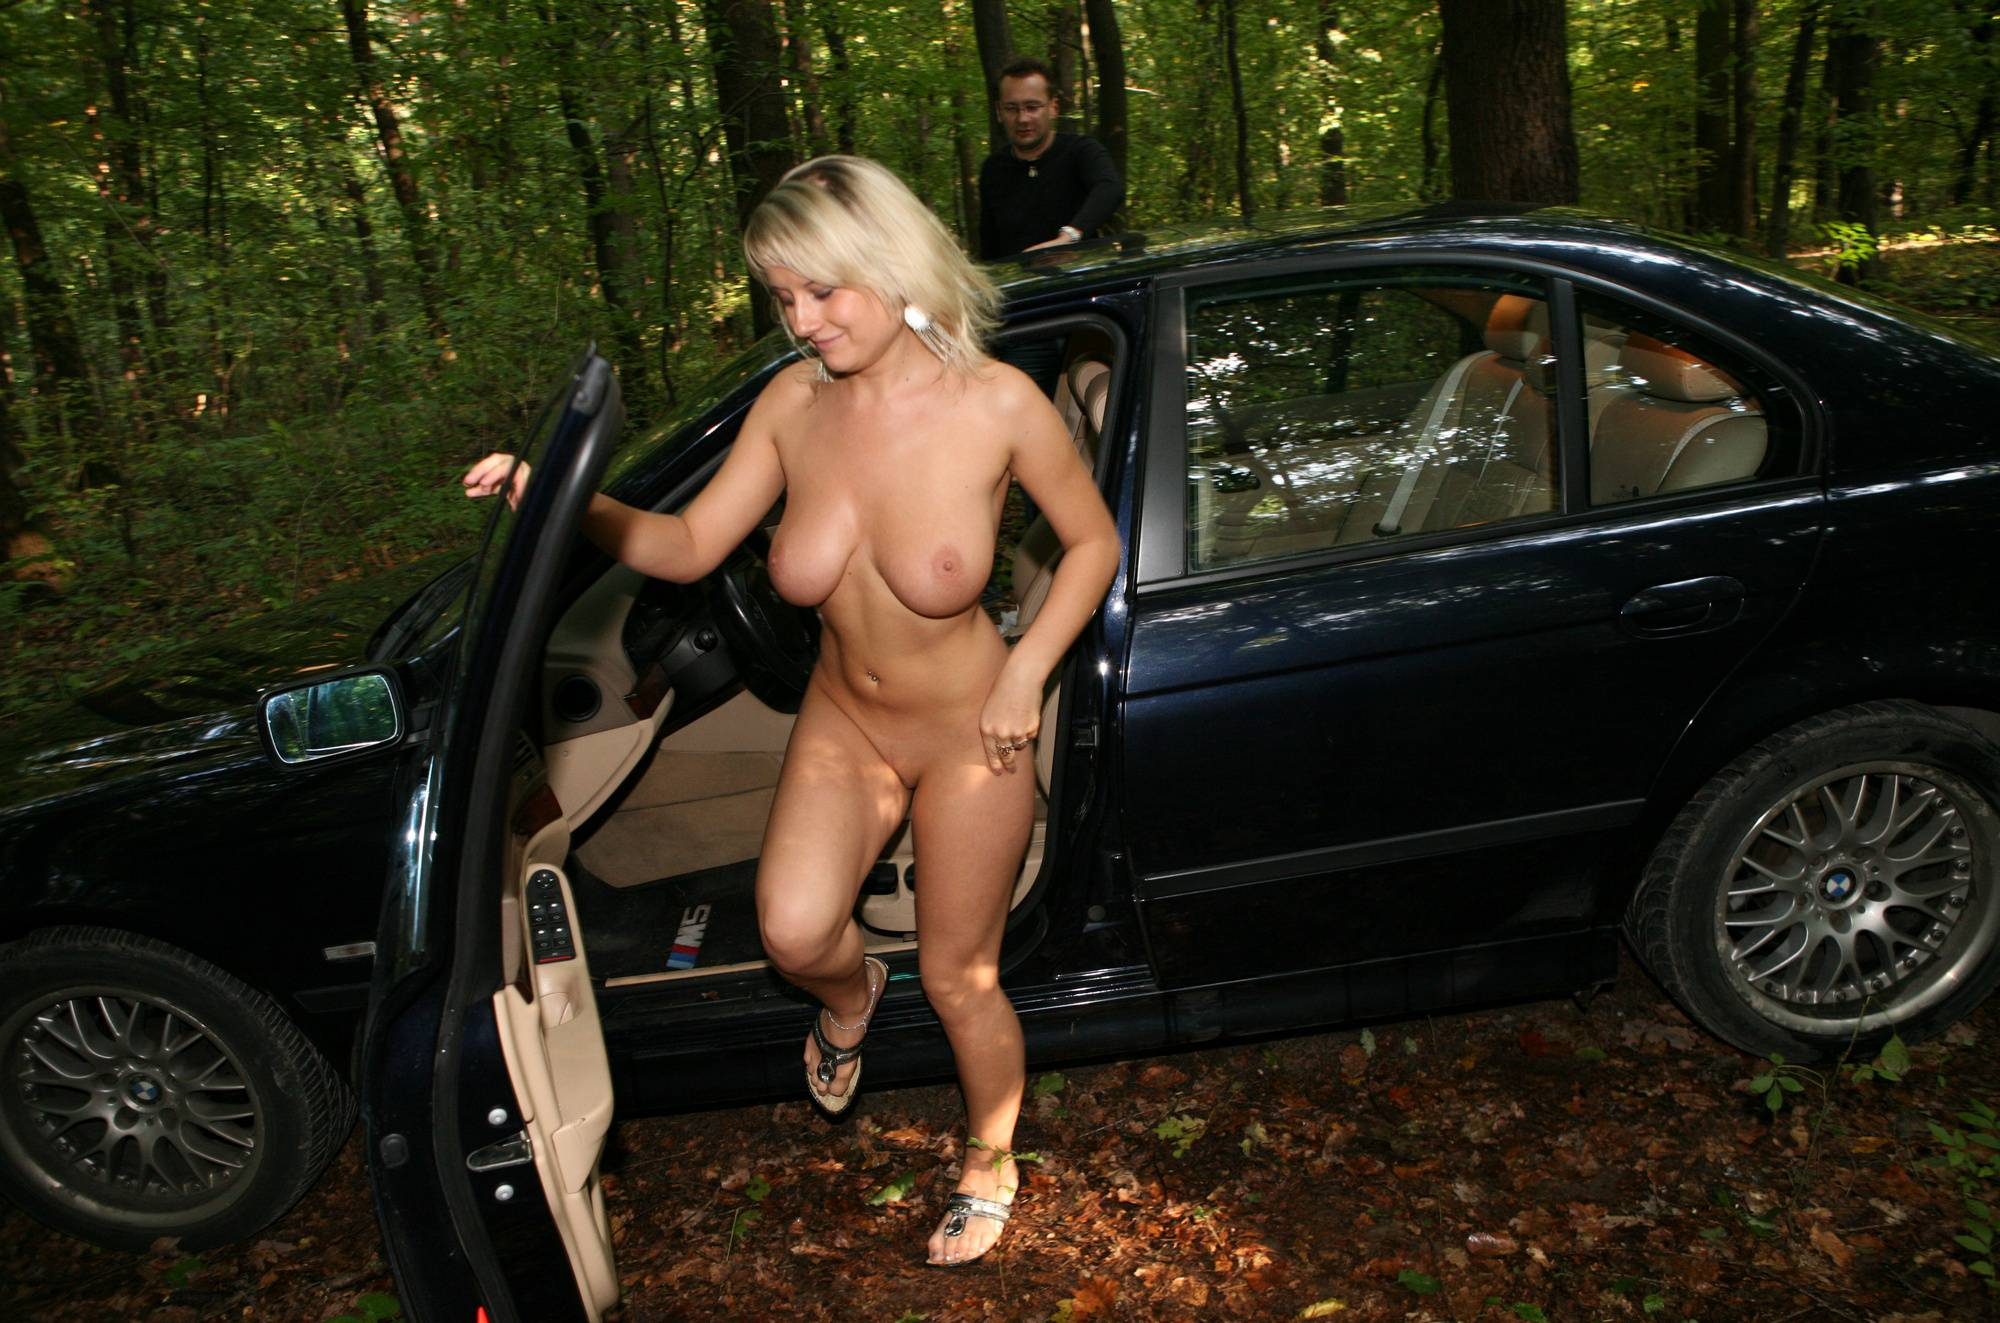 Purenudism Pics Forest Car Loving Time - 2